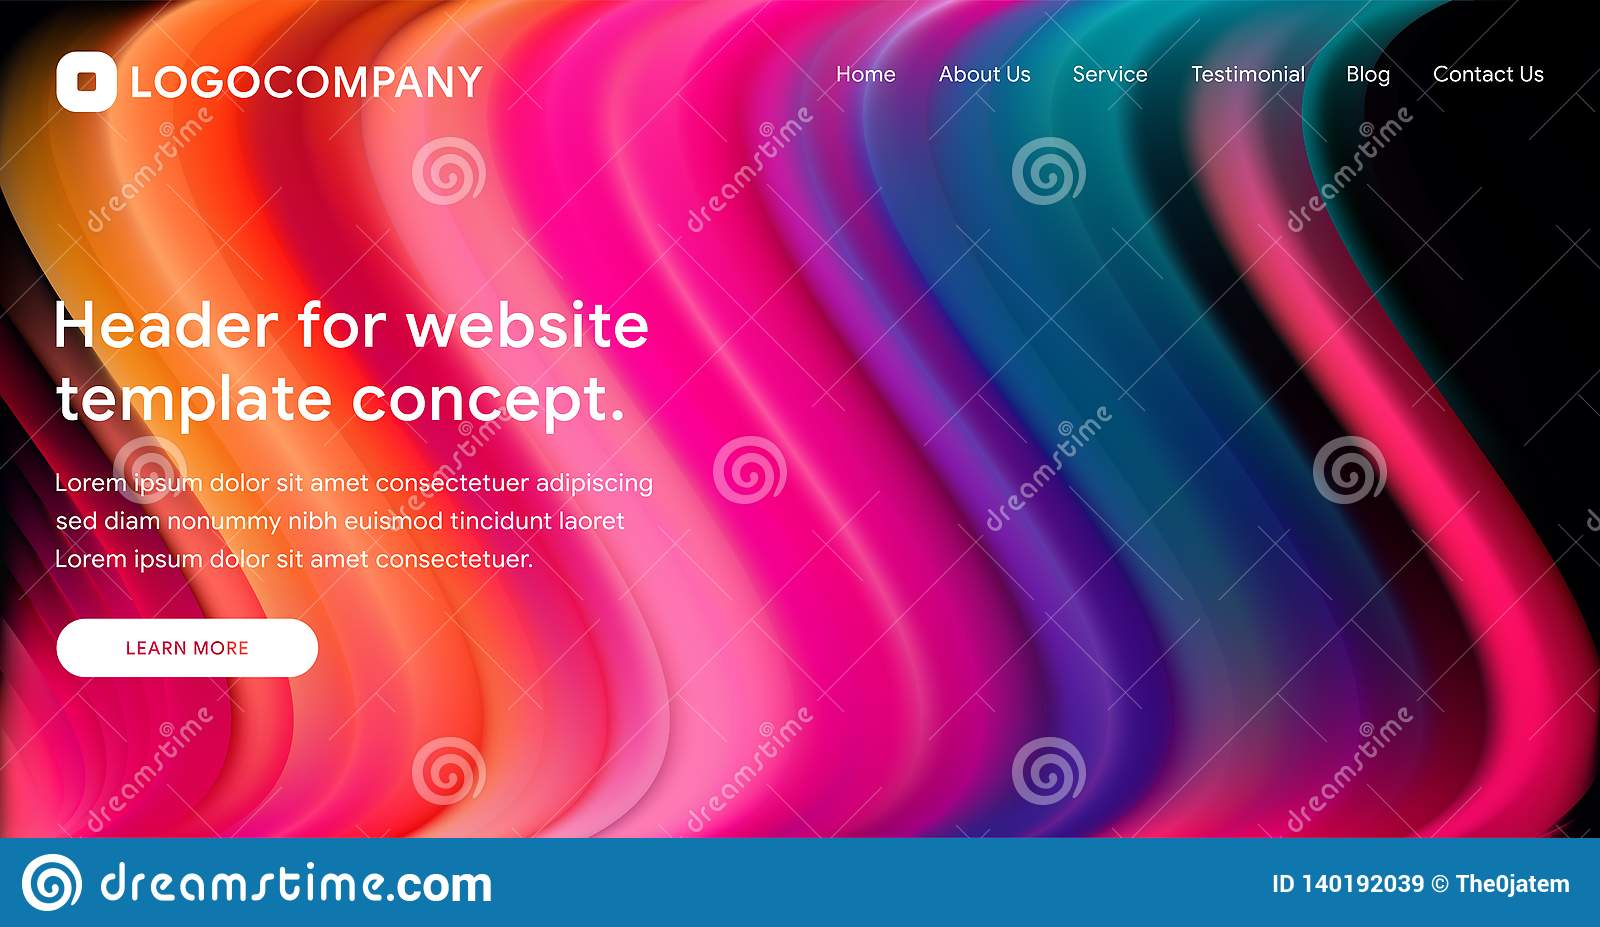 Responsive landing page or web template design with 3D isometric illustration of fluid bright gradient background. Liquid color